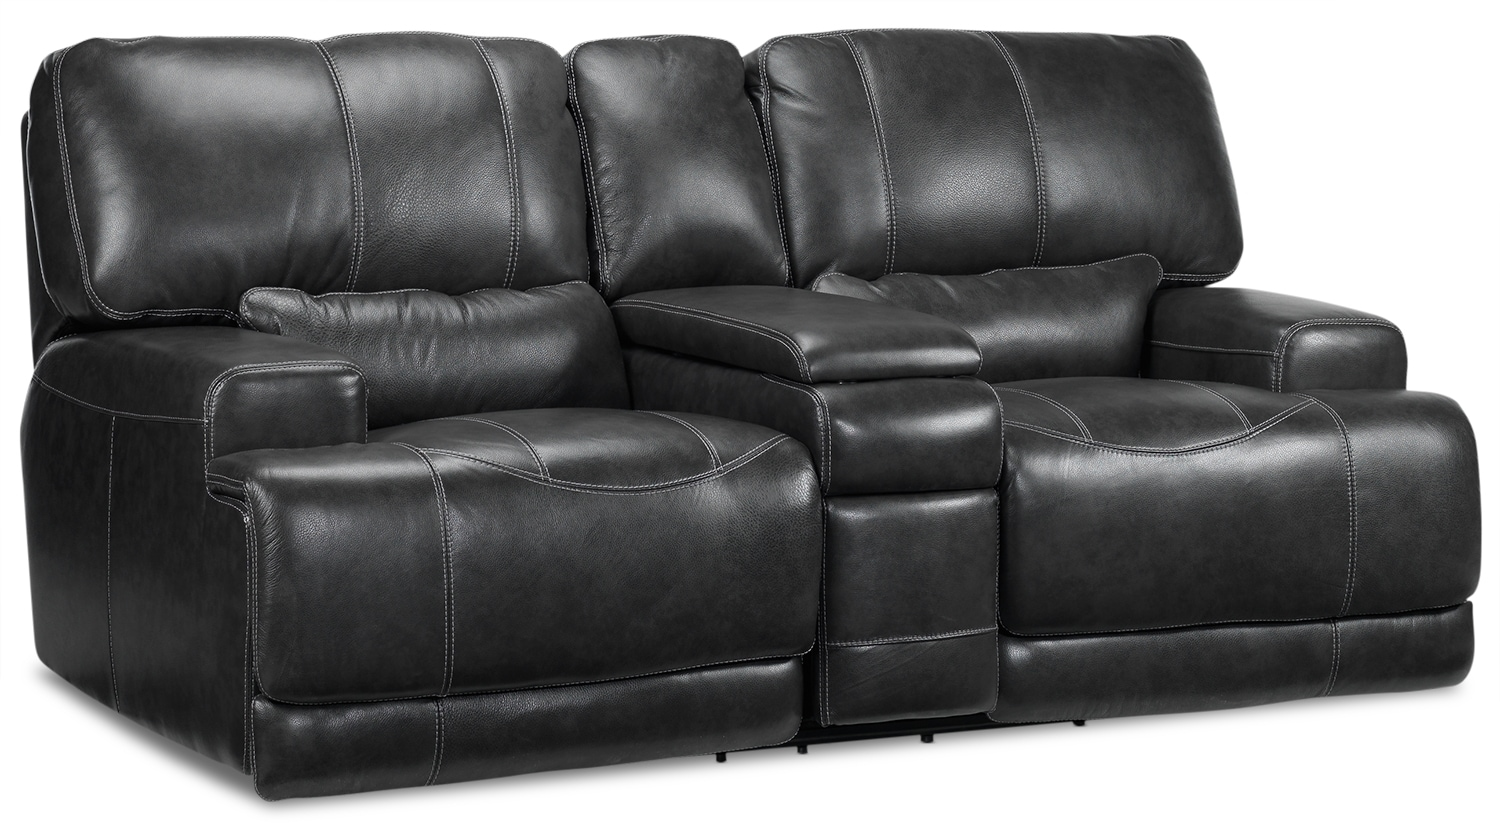 Dearborn Power Reclining Loveseat With Console Charcoal Leon 39 S